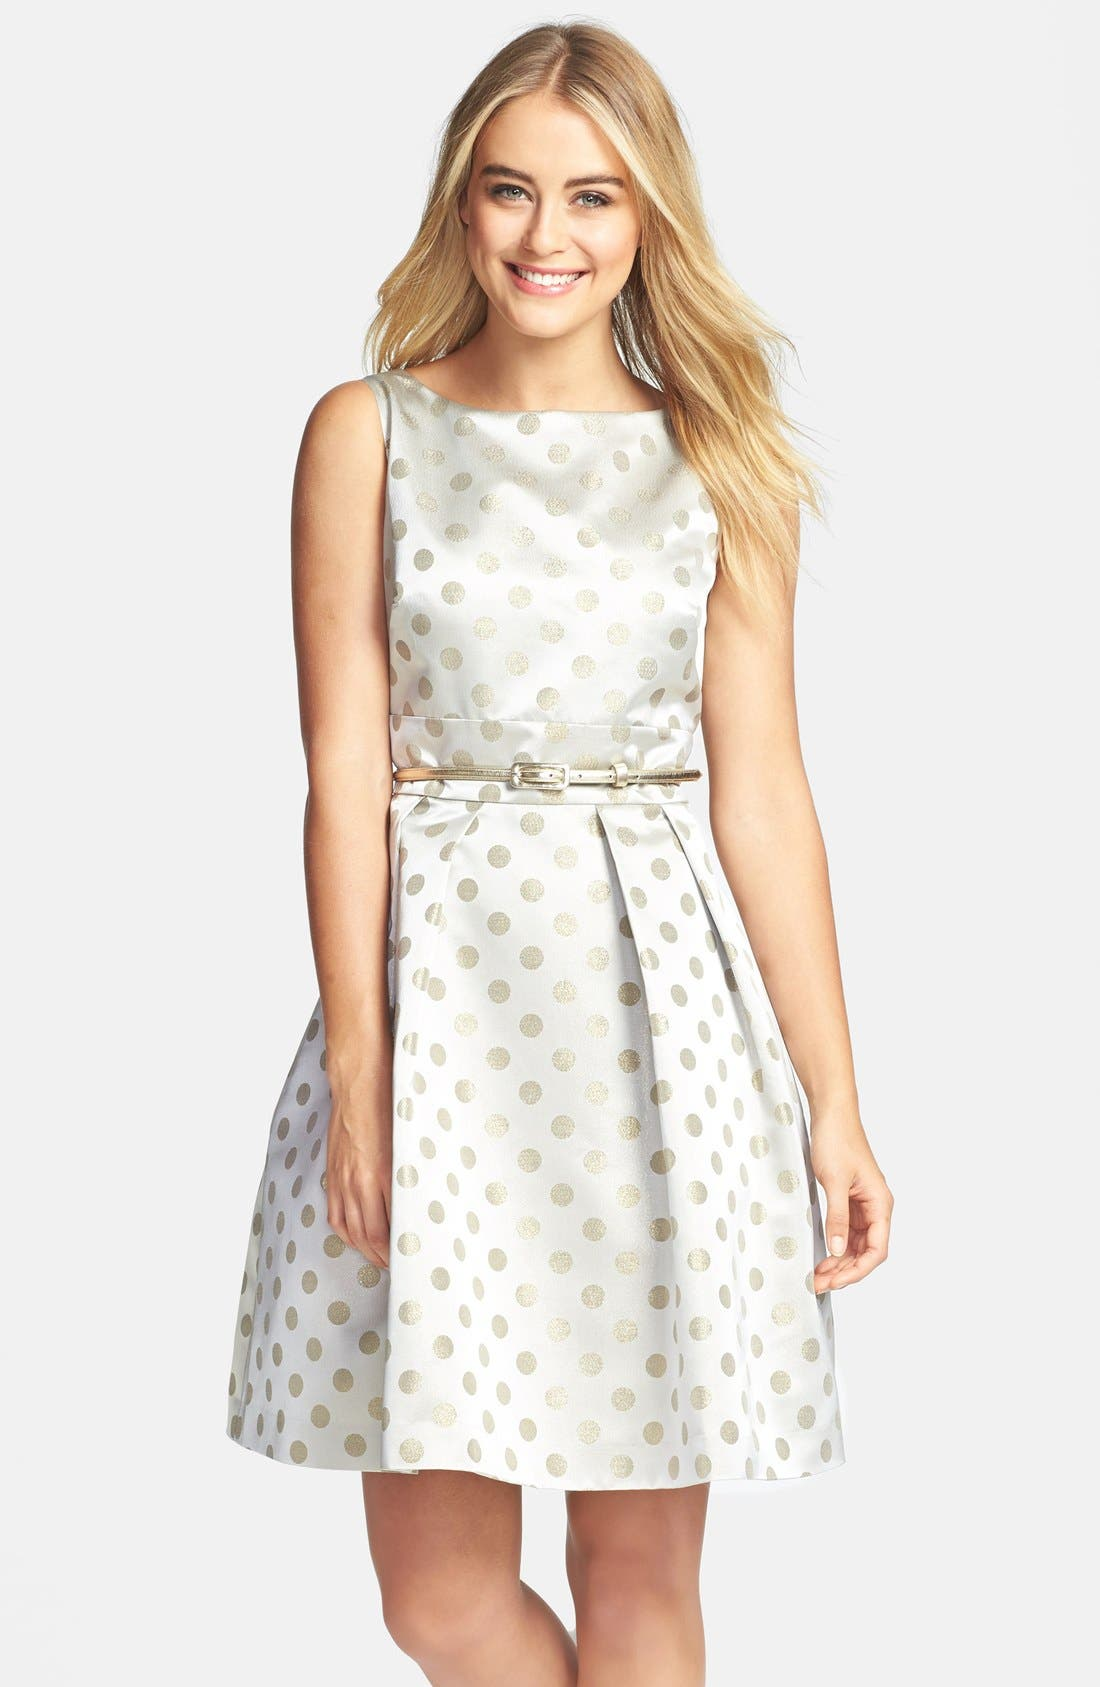 Main Image - Eliza J Polka Dot Jacquard Fit & Flare Dress